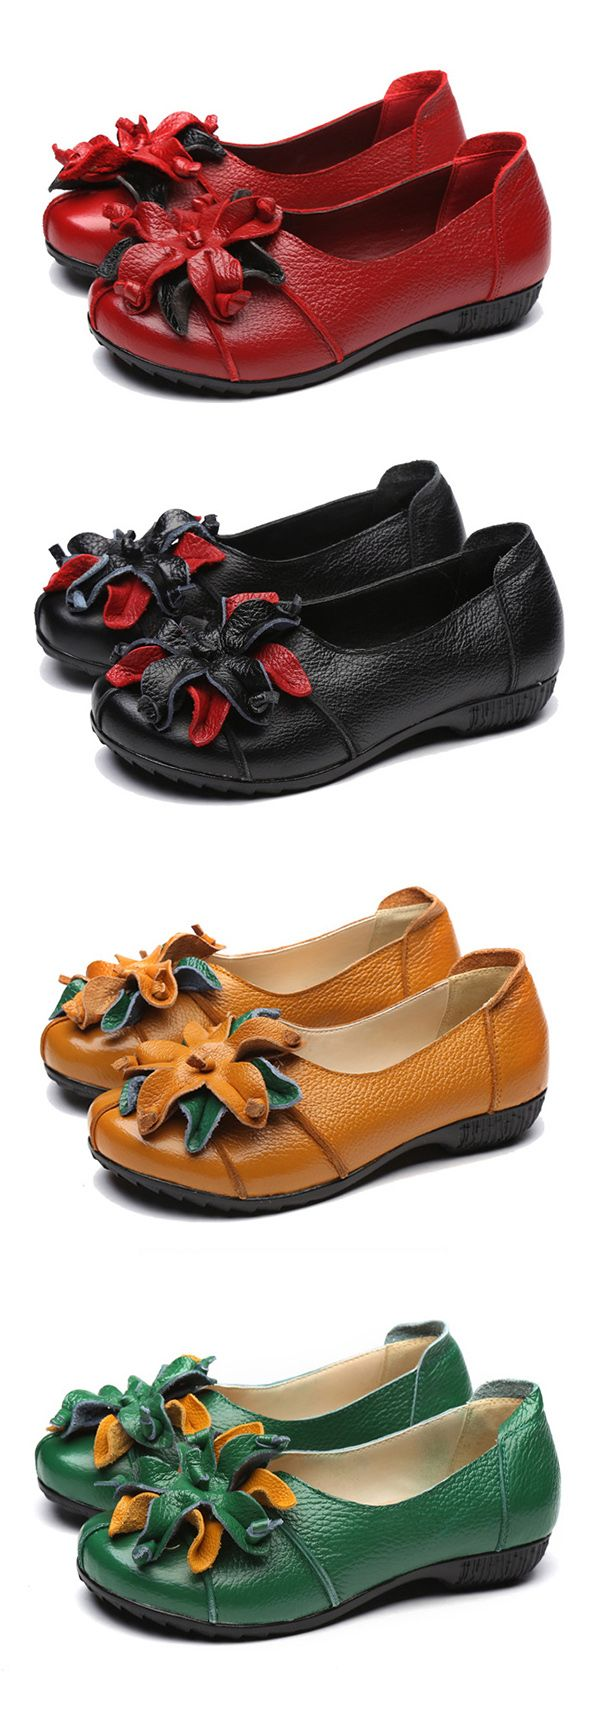 US$28.85 SOCOFY Retro Handmade Flower Soft Flat Casual Leather Loafers